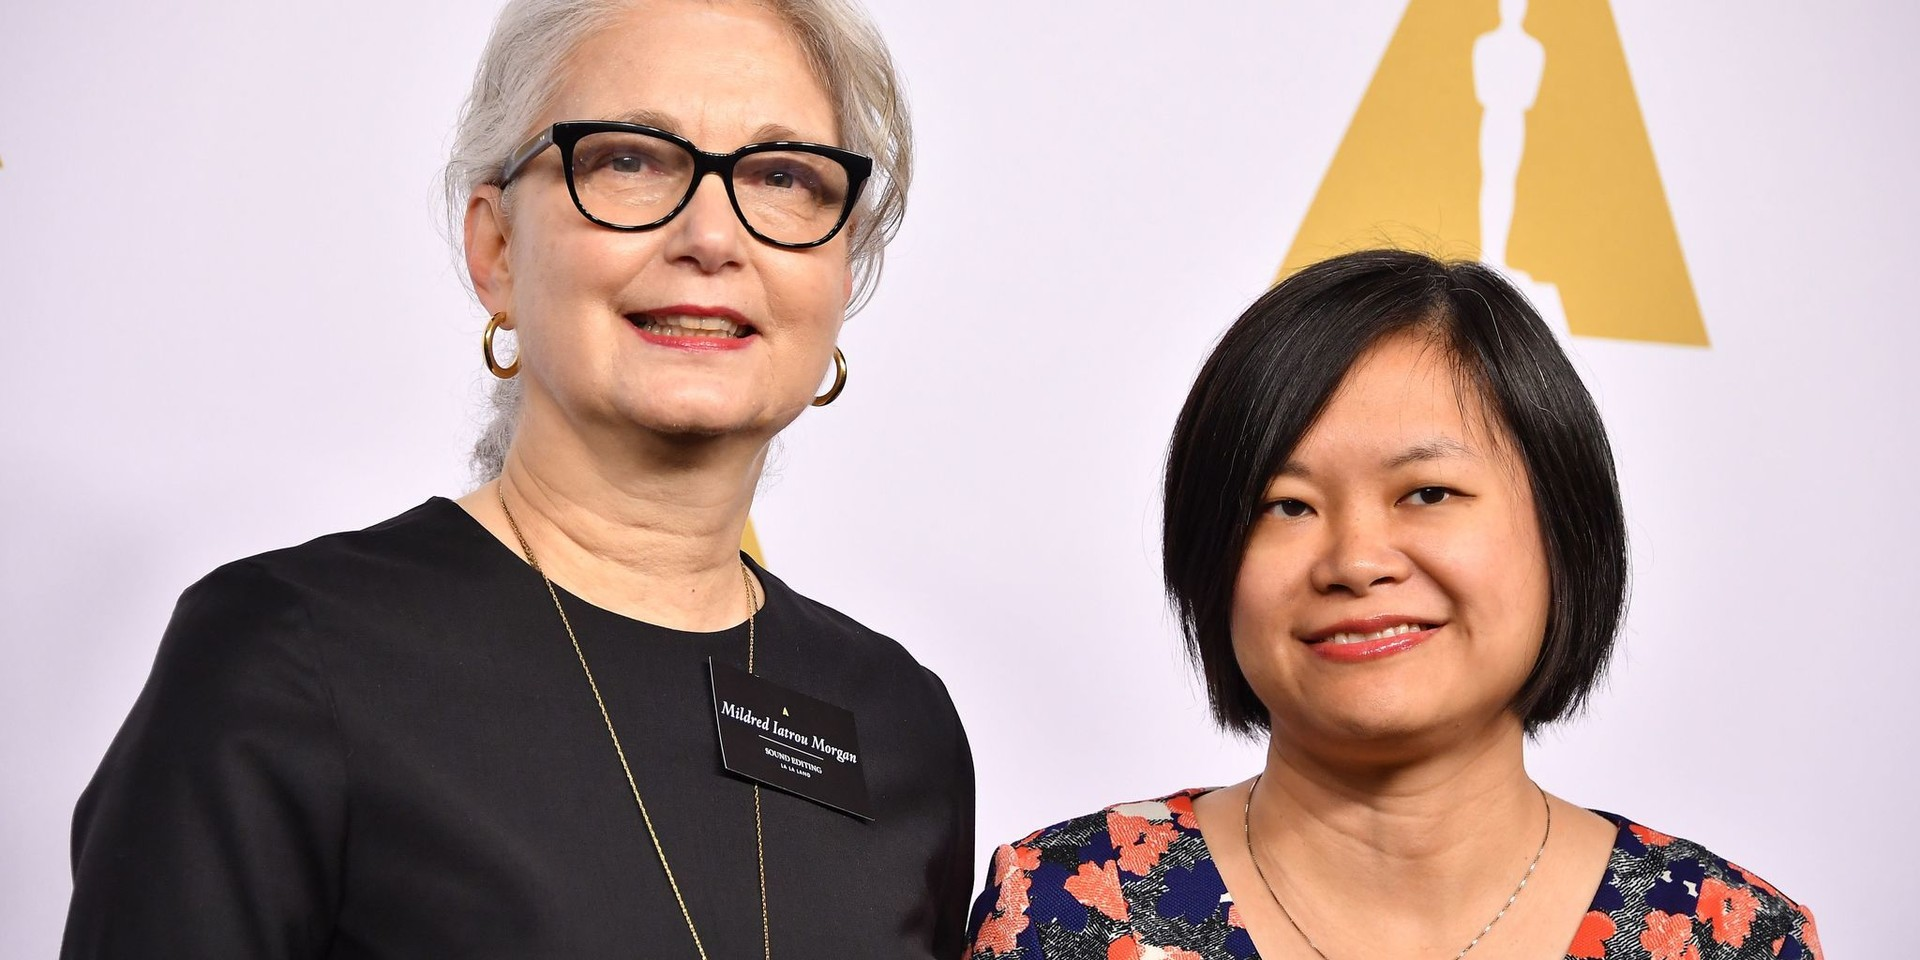 Singaporean sound editor Ai-Ling Lee may be Oscar-less, but she's someone to look up to